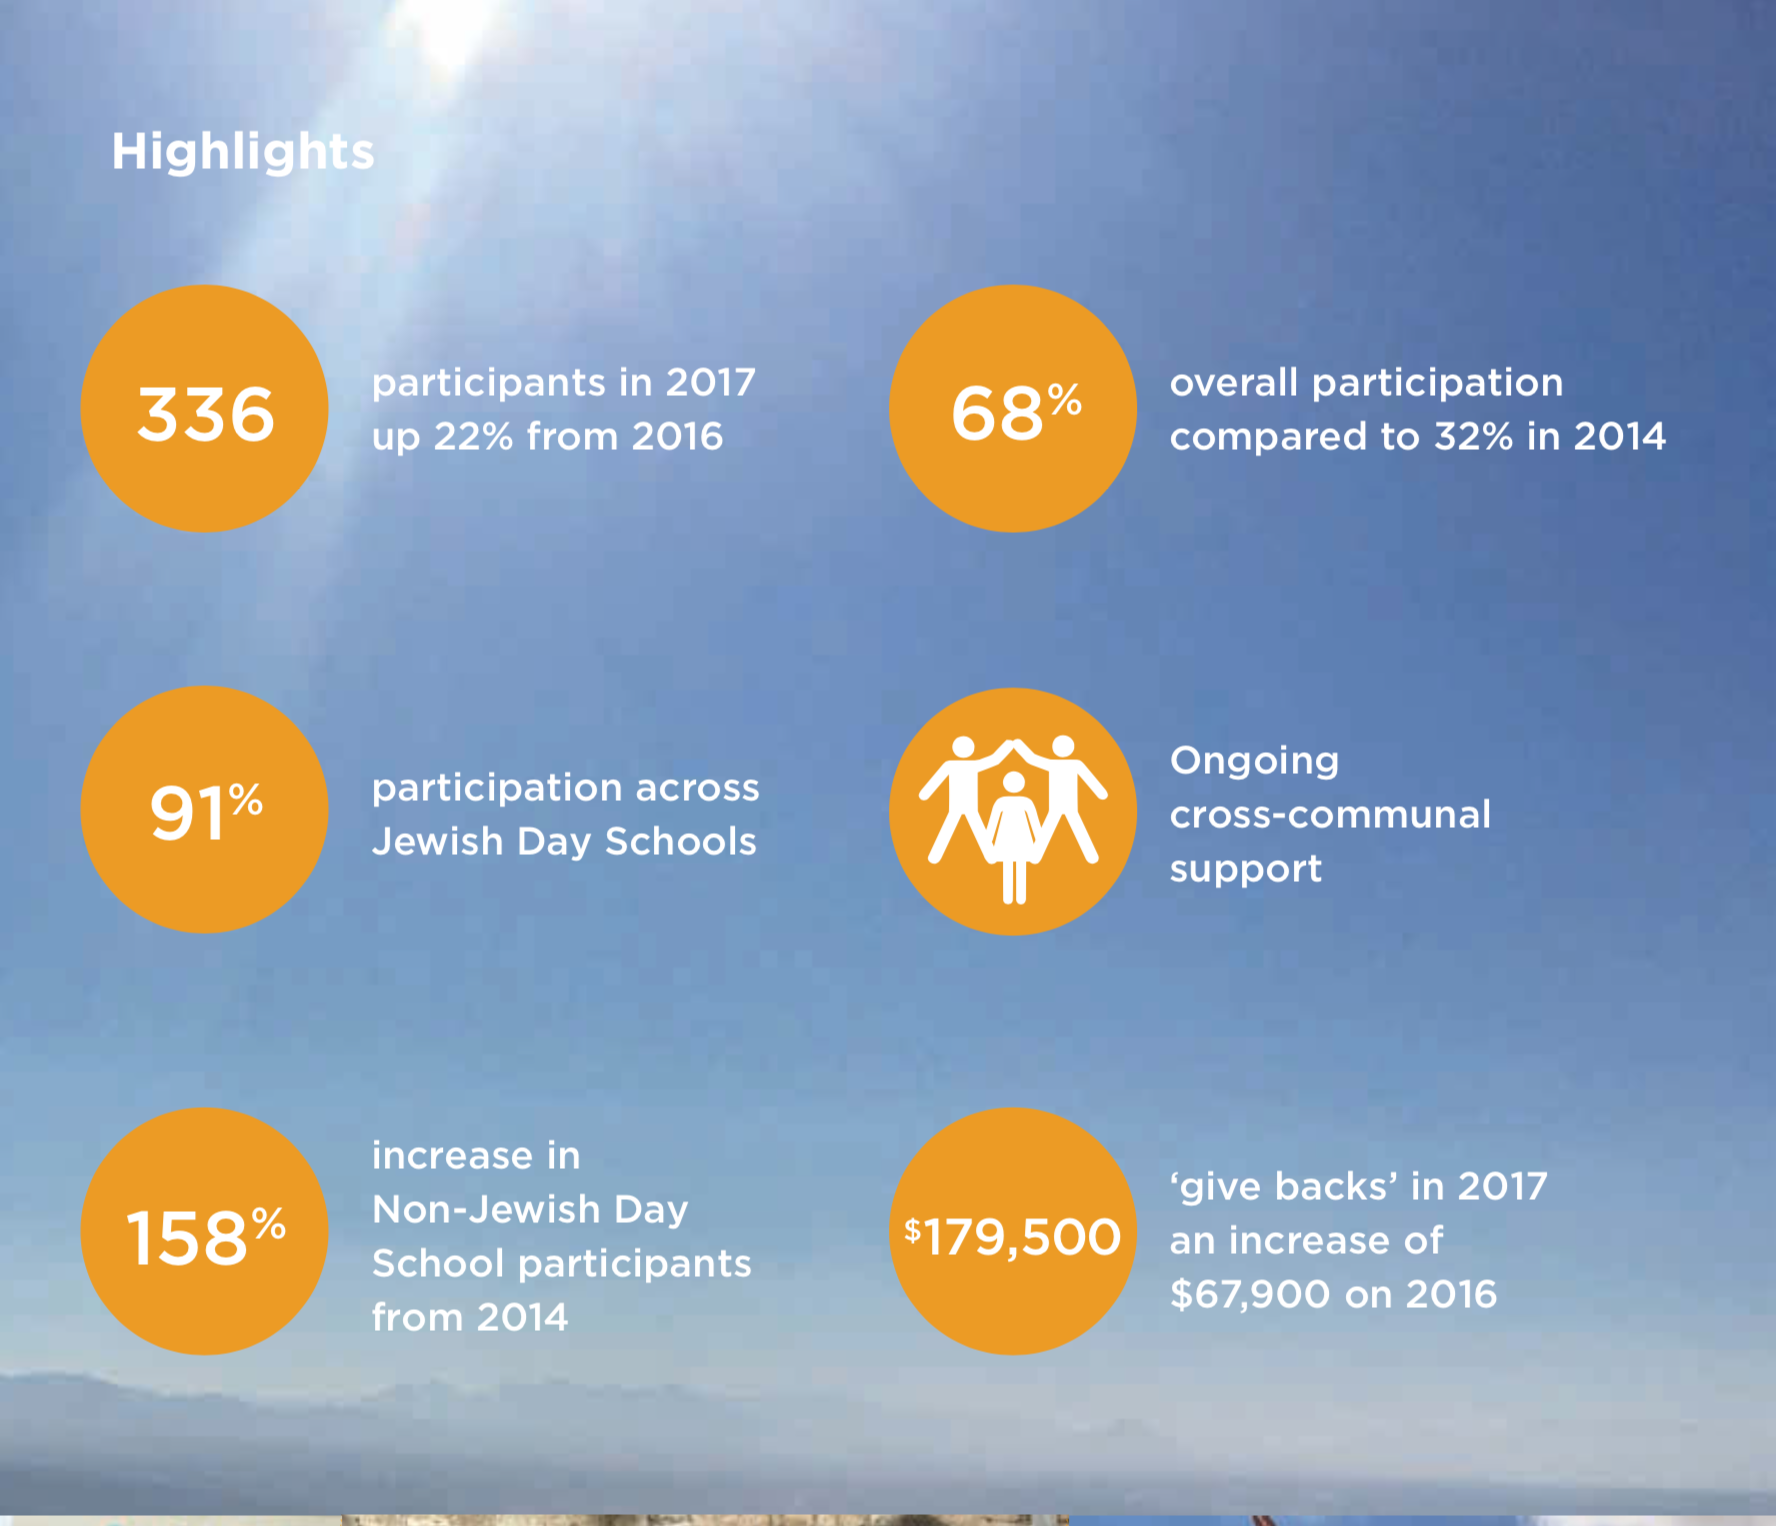 Highlights from the 2017 Annual Report